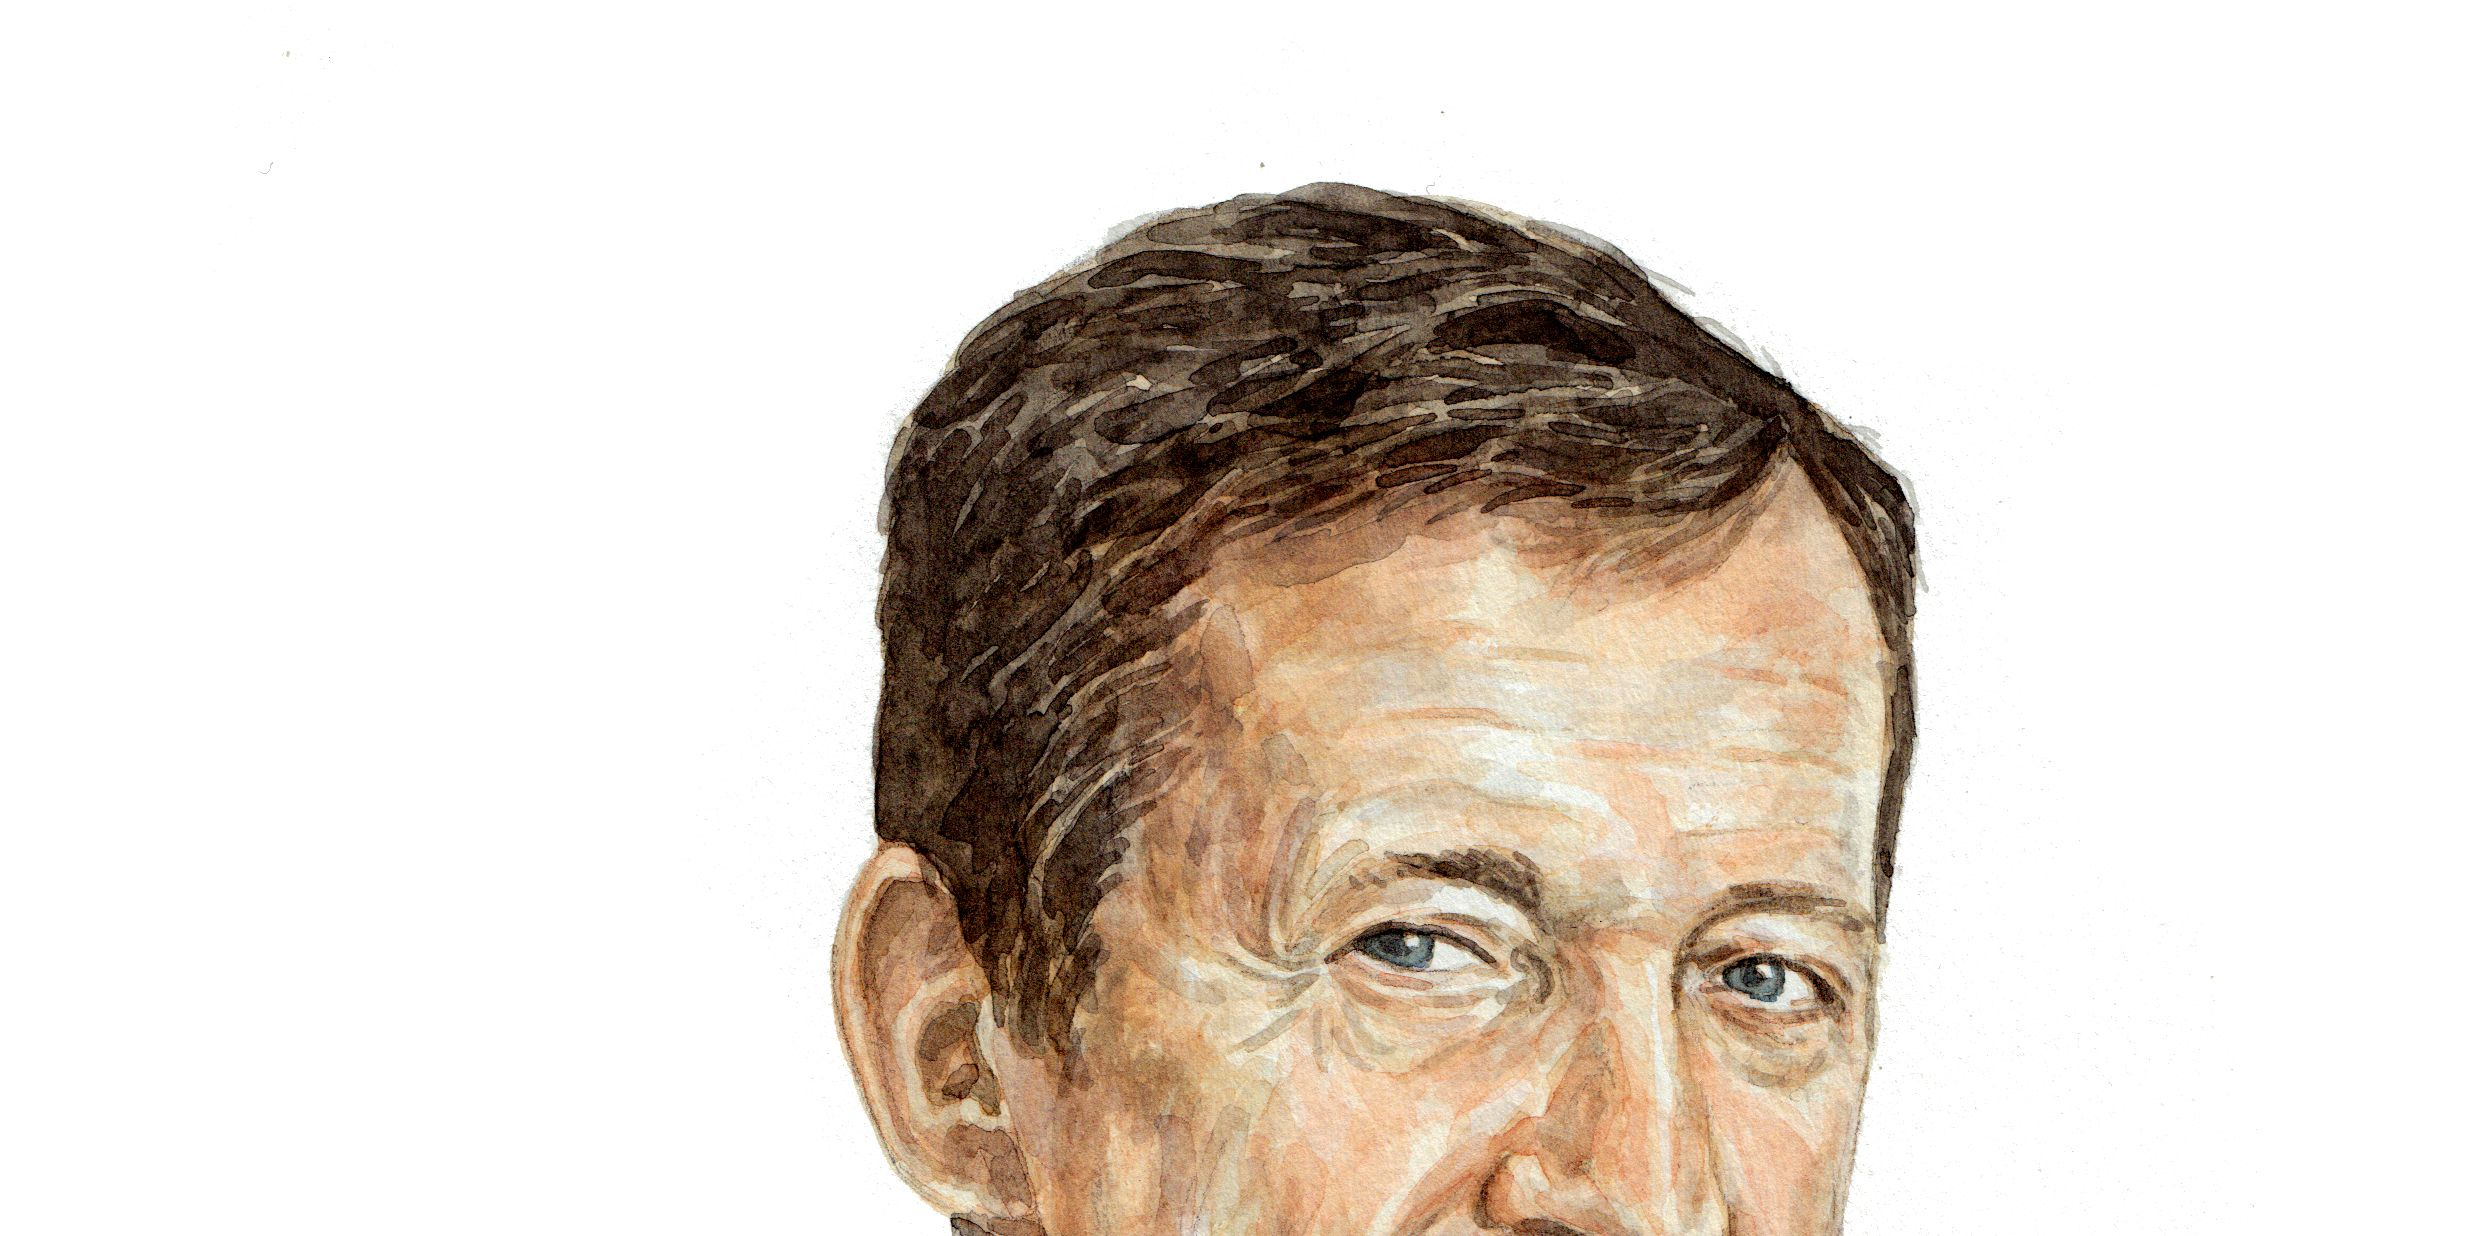 Alastair Campbell illustration for Esquire